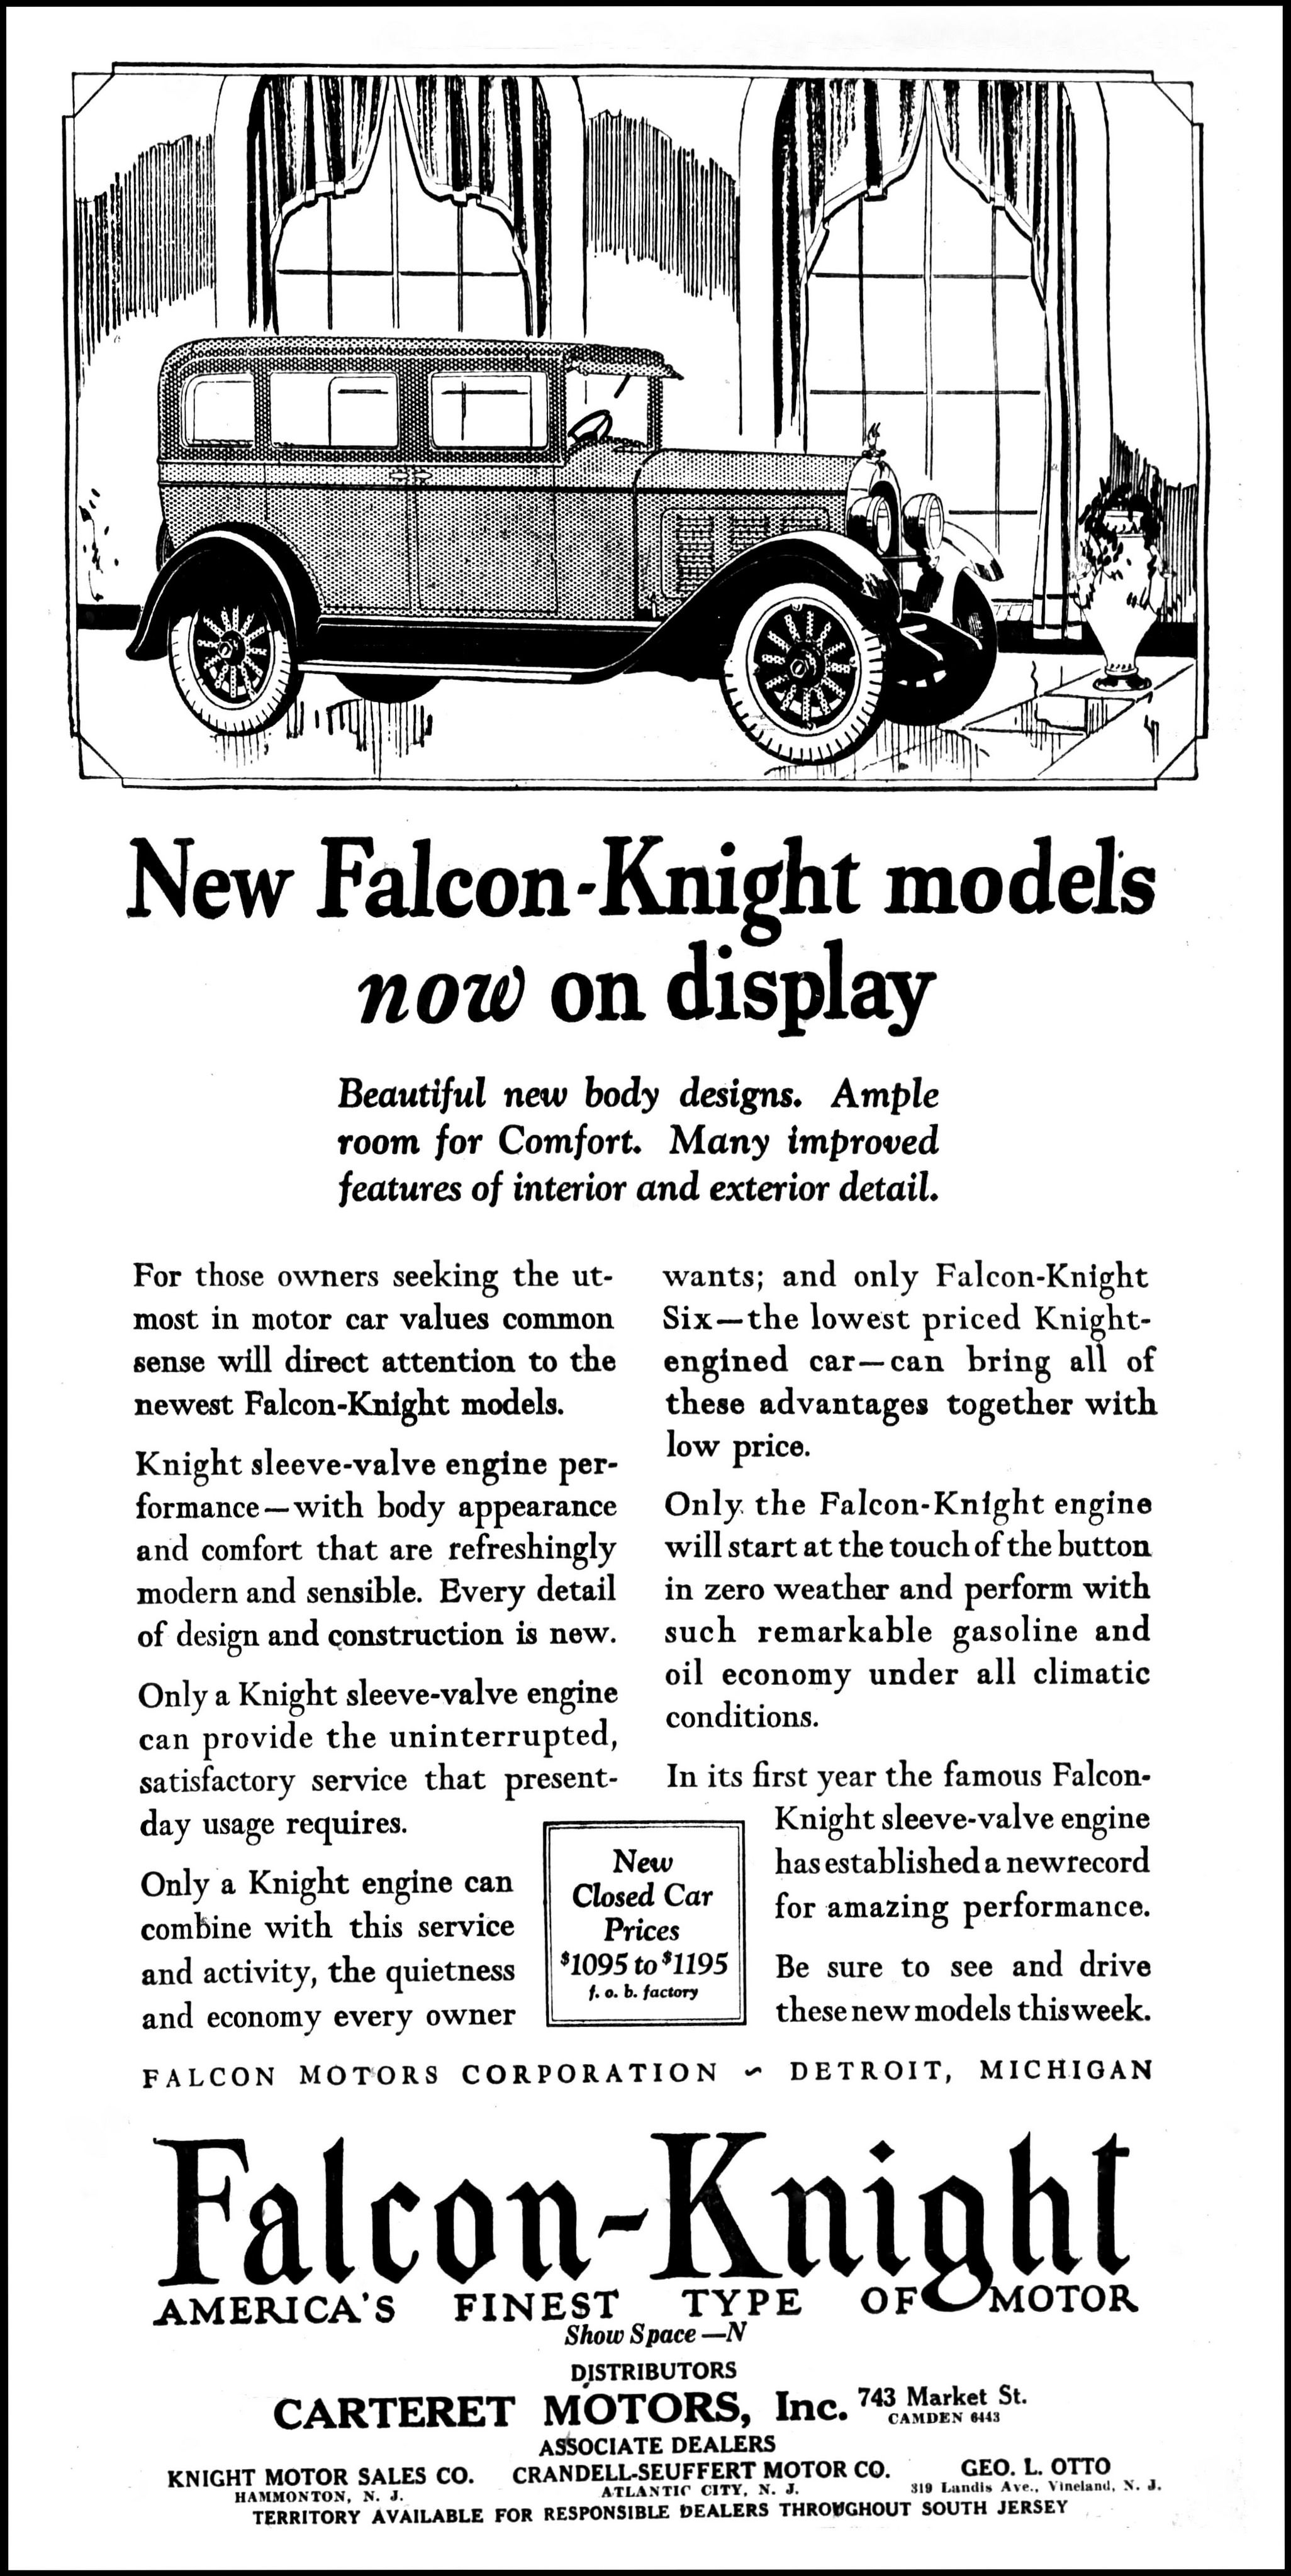 Vintage Advertising For The 1928 Falcon Knight Automobile In The Camden New Jersey Evening Courier Newspaper January 30 1928 Vintage Advertisements Automobile Camden New Jersey